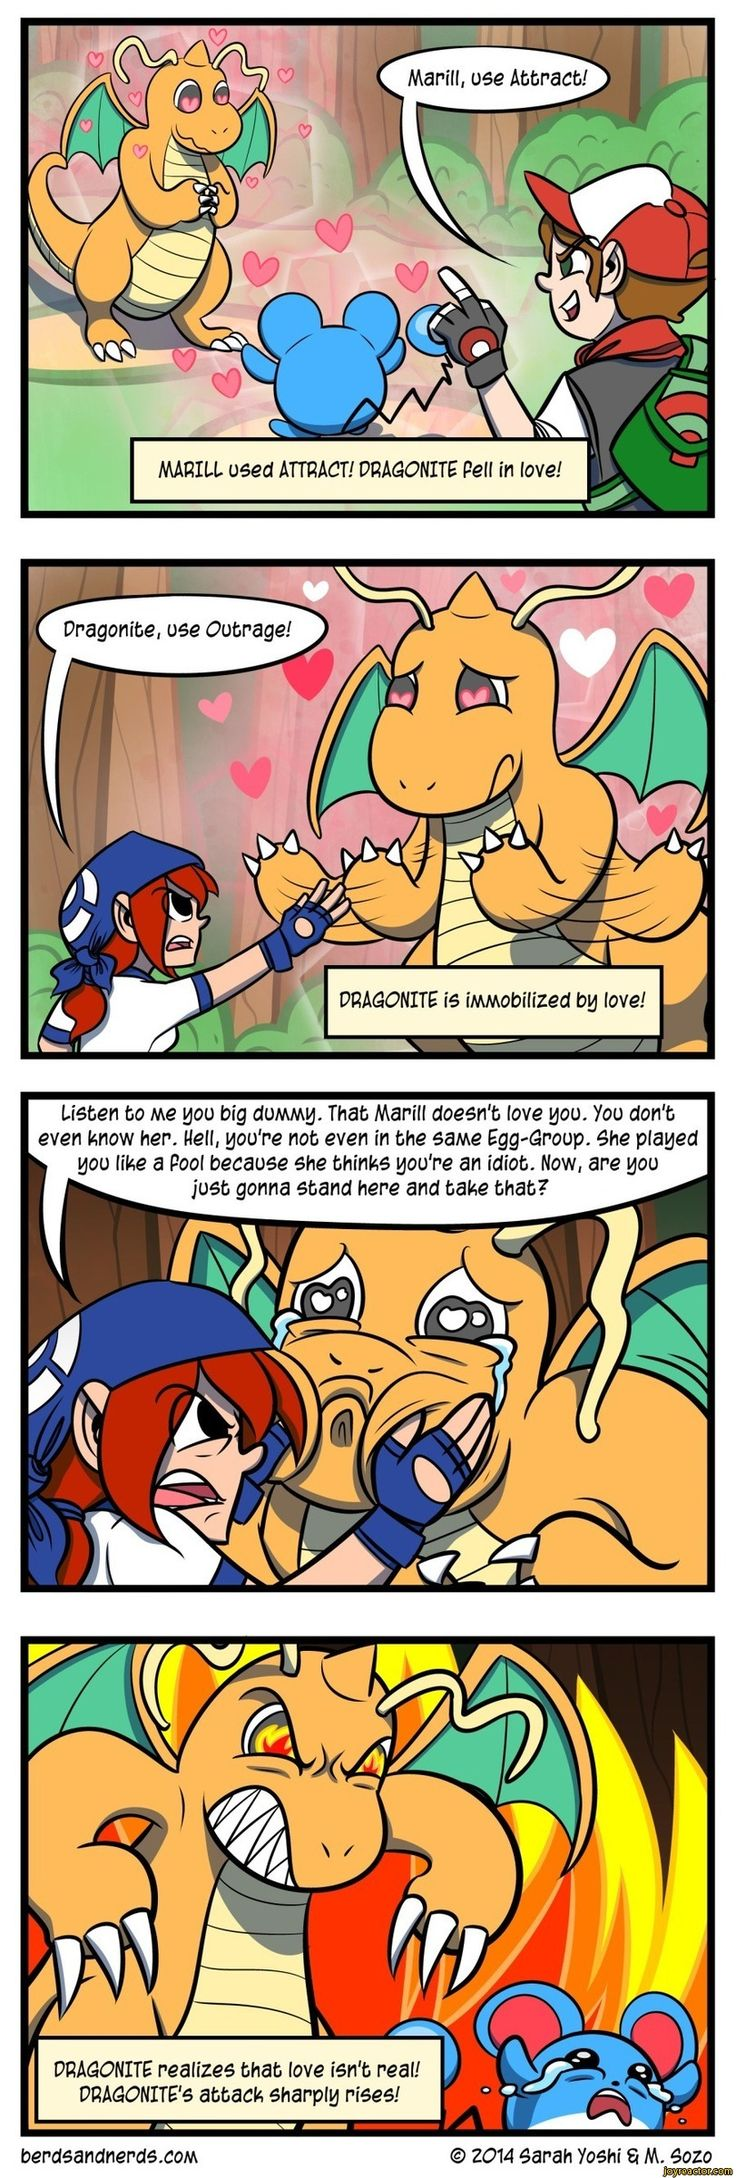 Pokemon jokes :: fandoms / funny pictures & best jokes: comics, images, video, humor, gif animation - i lol'd